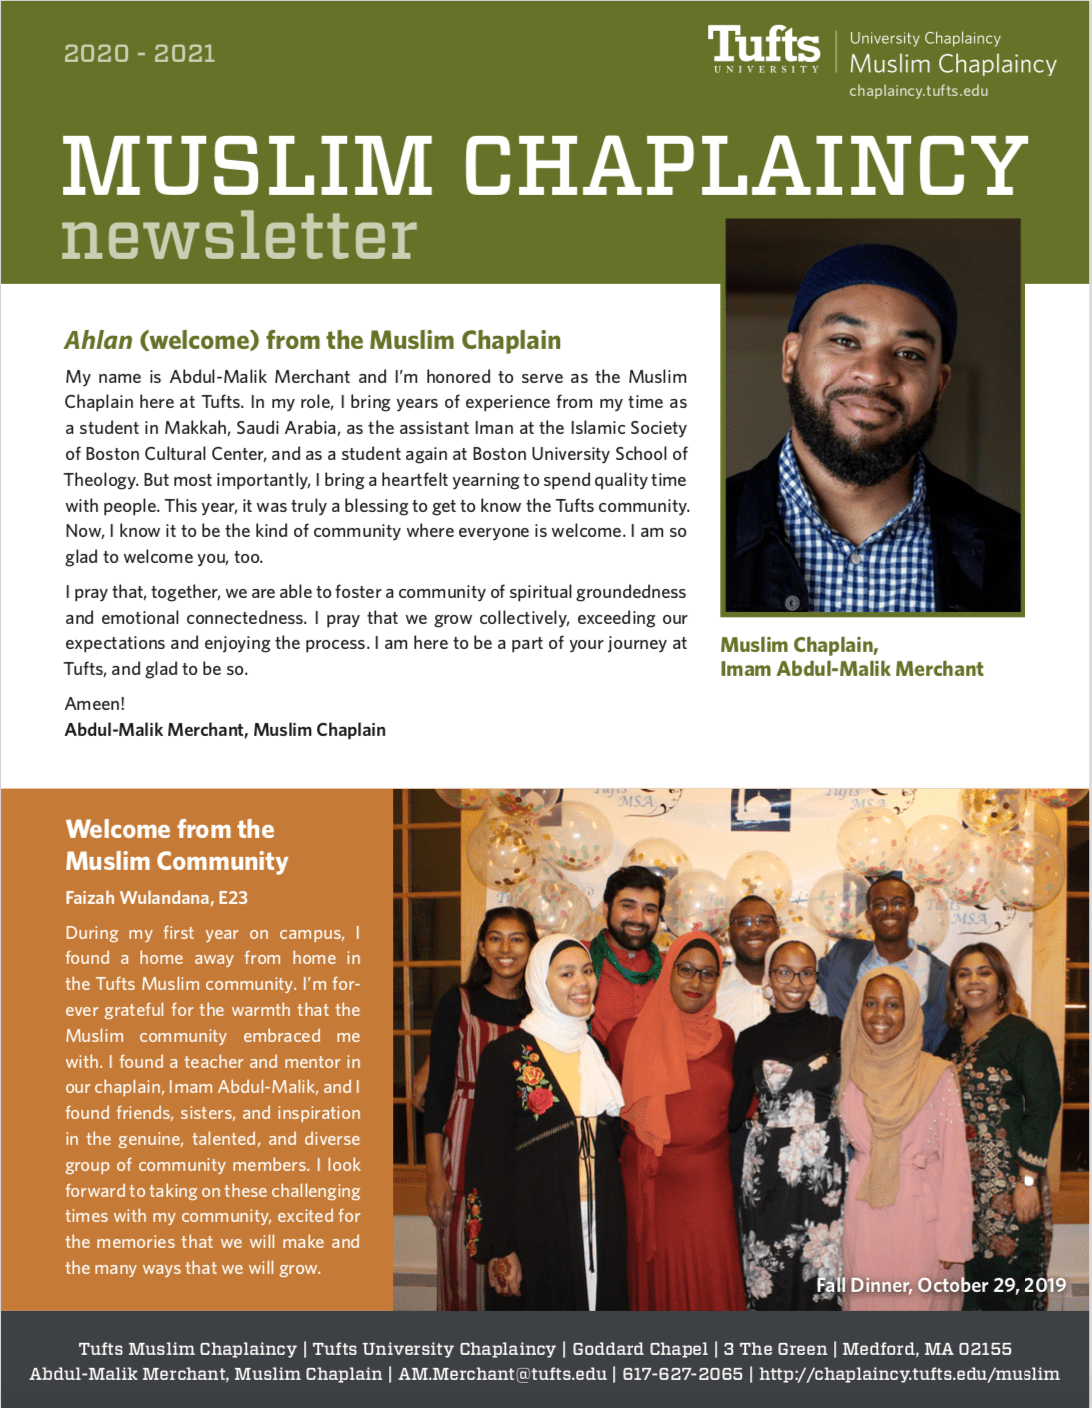 First page of the Muslim newsletter